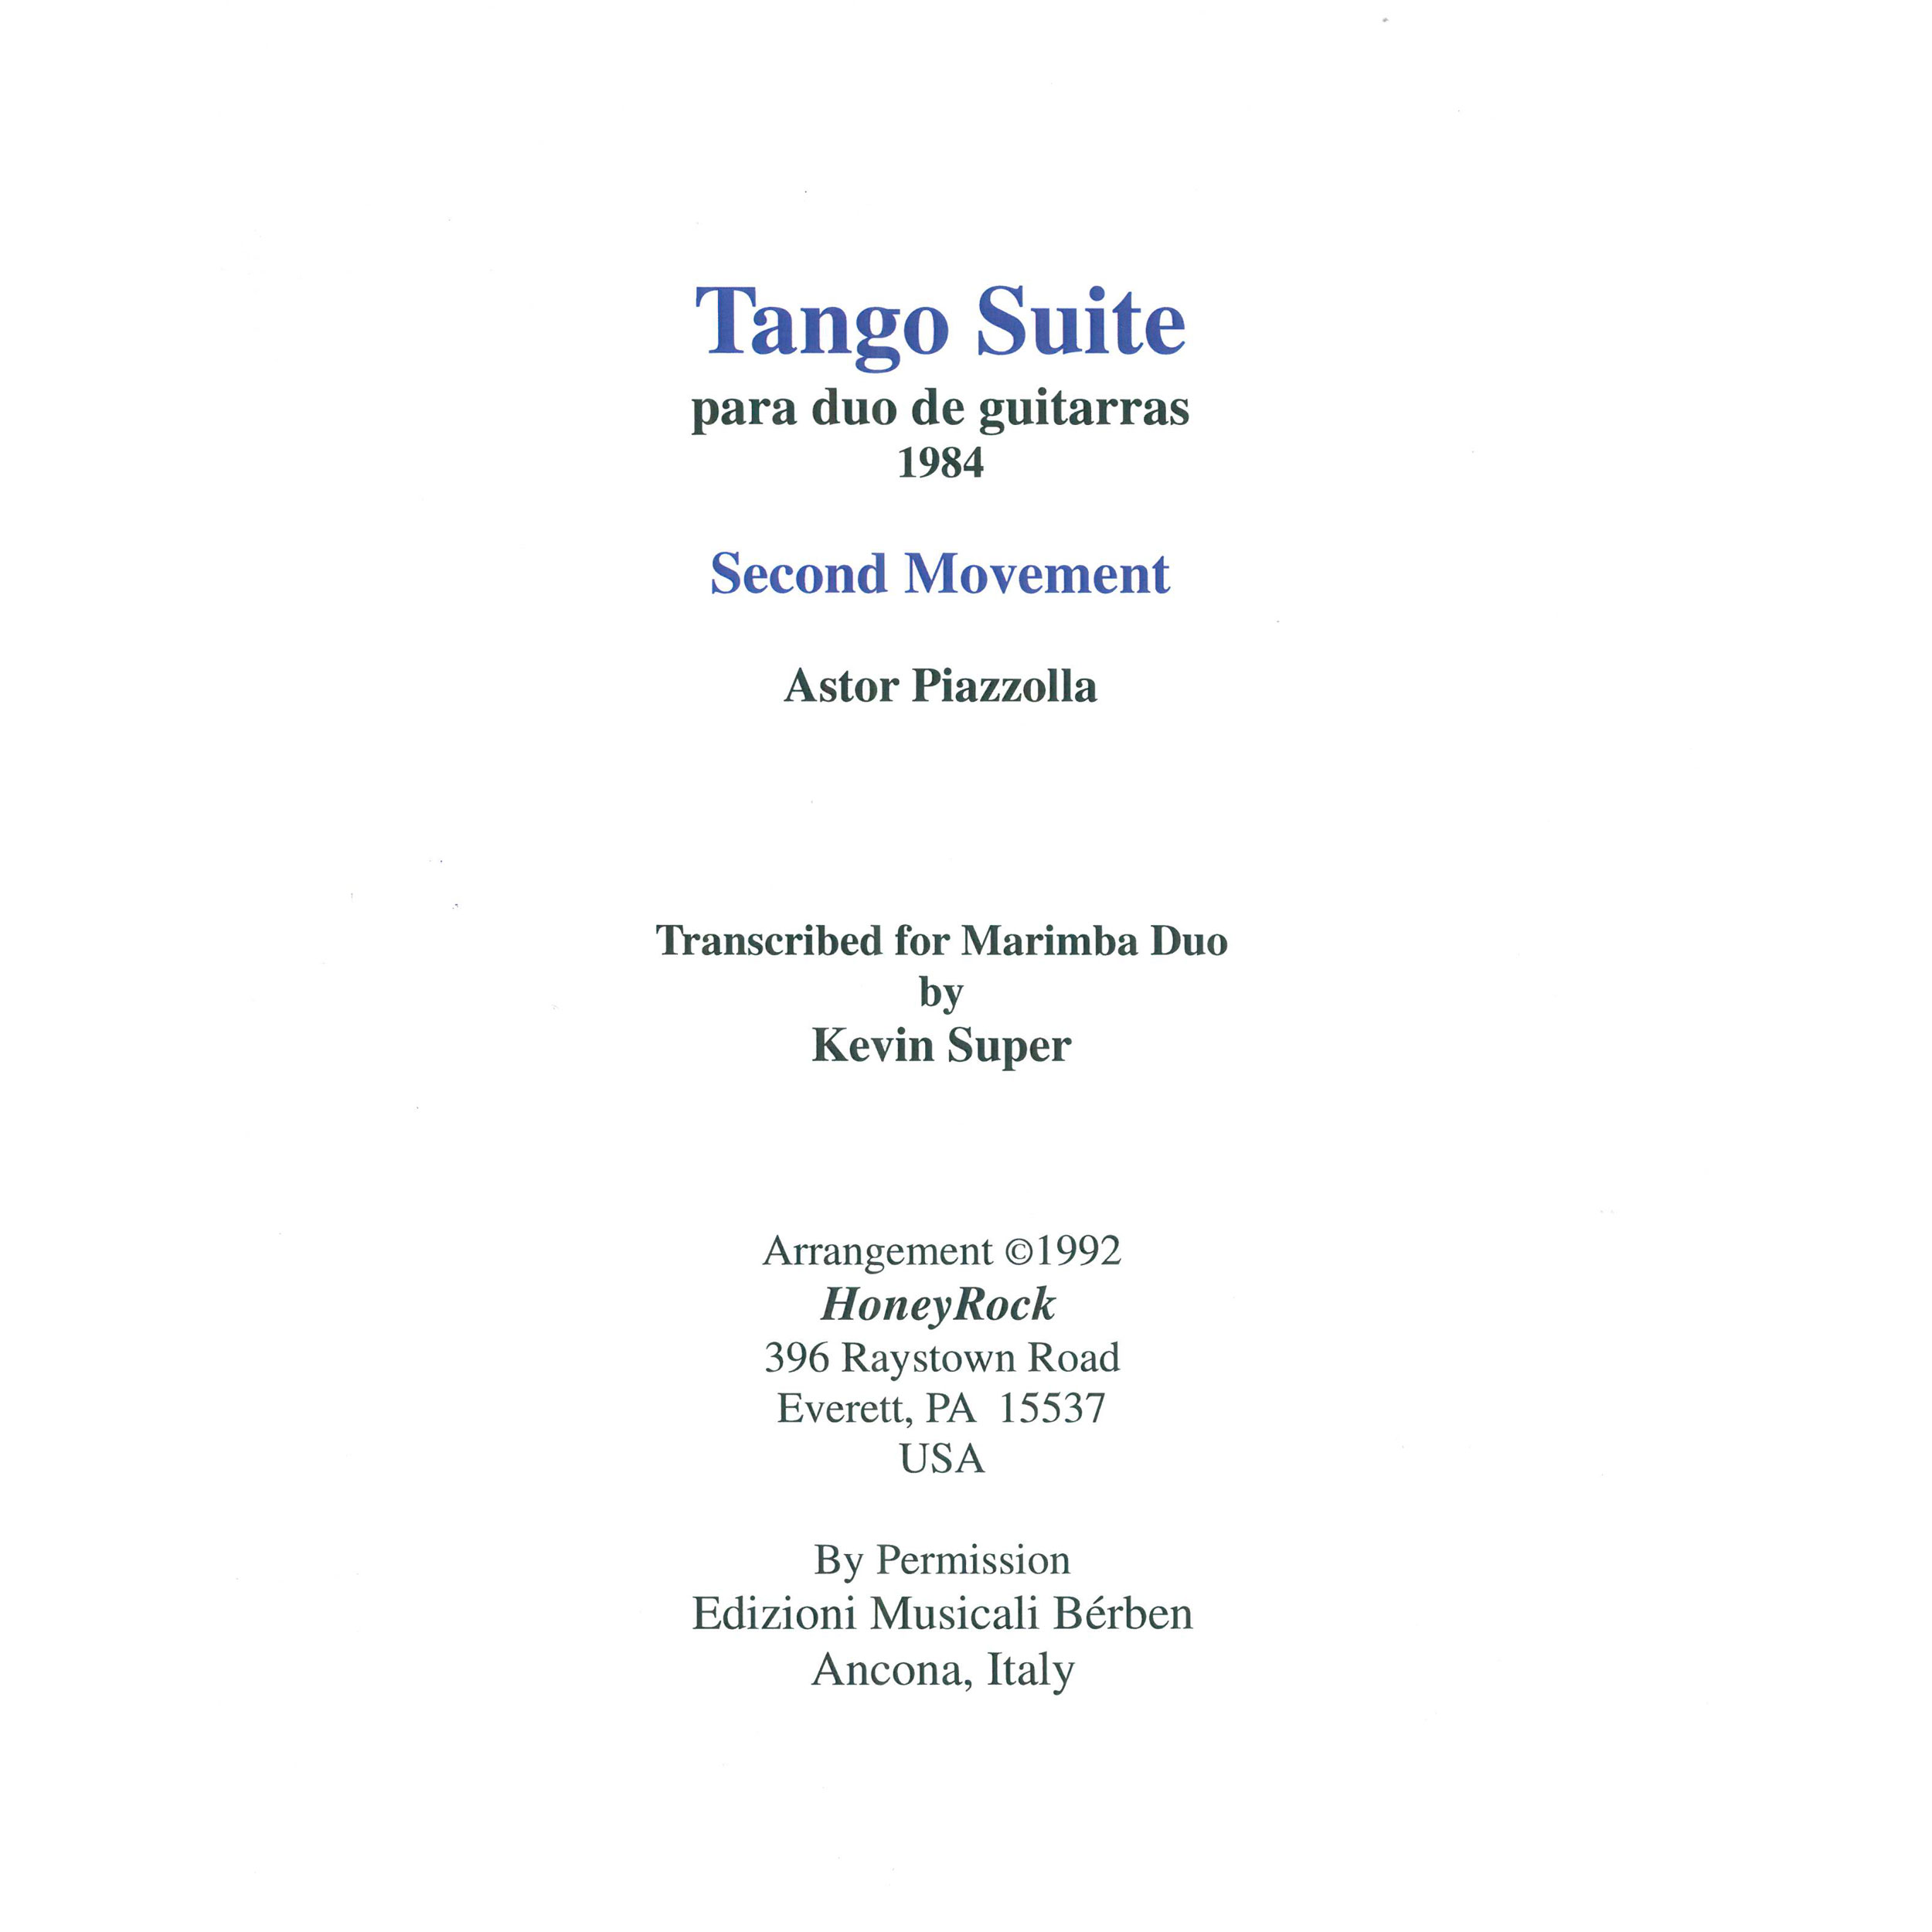 Tango Suite Mvt. II by Astor Piazzolla arr. Kevin Super